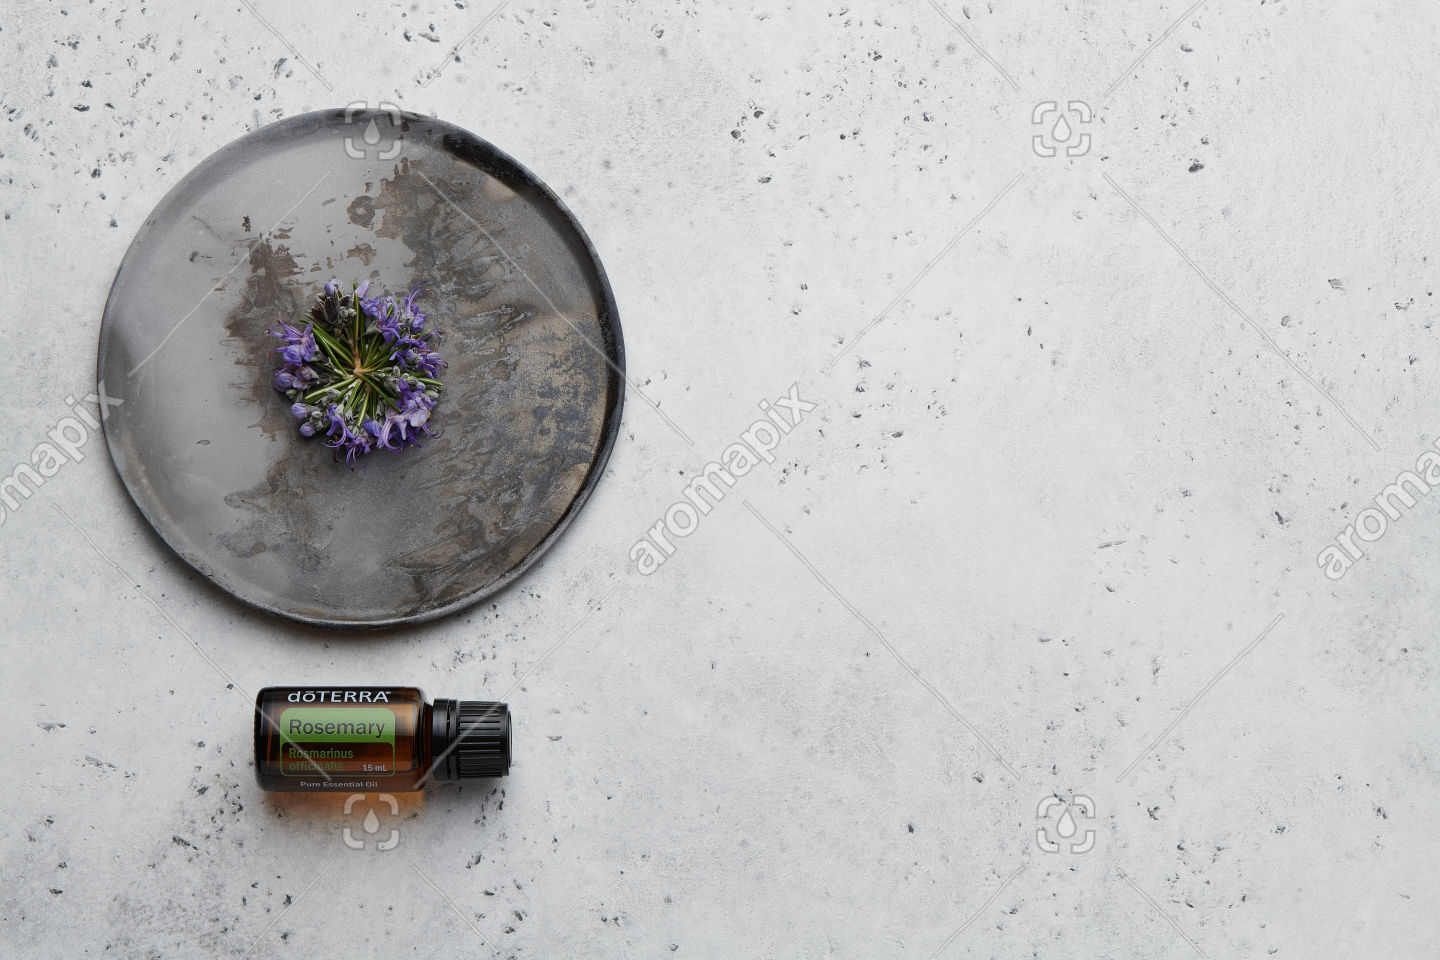 doTERRA Rosemary with rosemary flowers on white